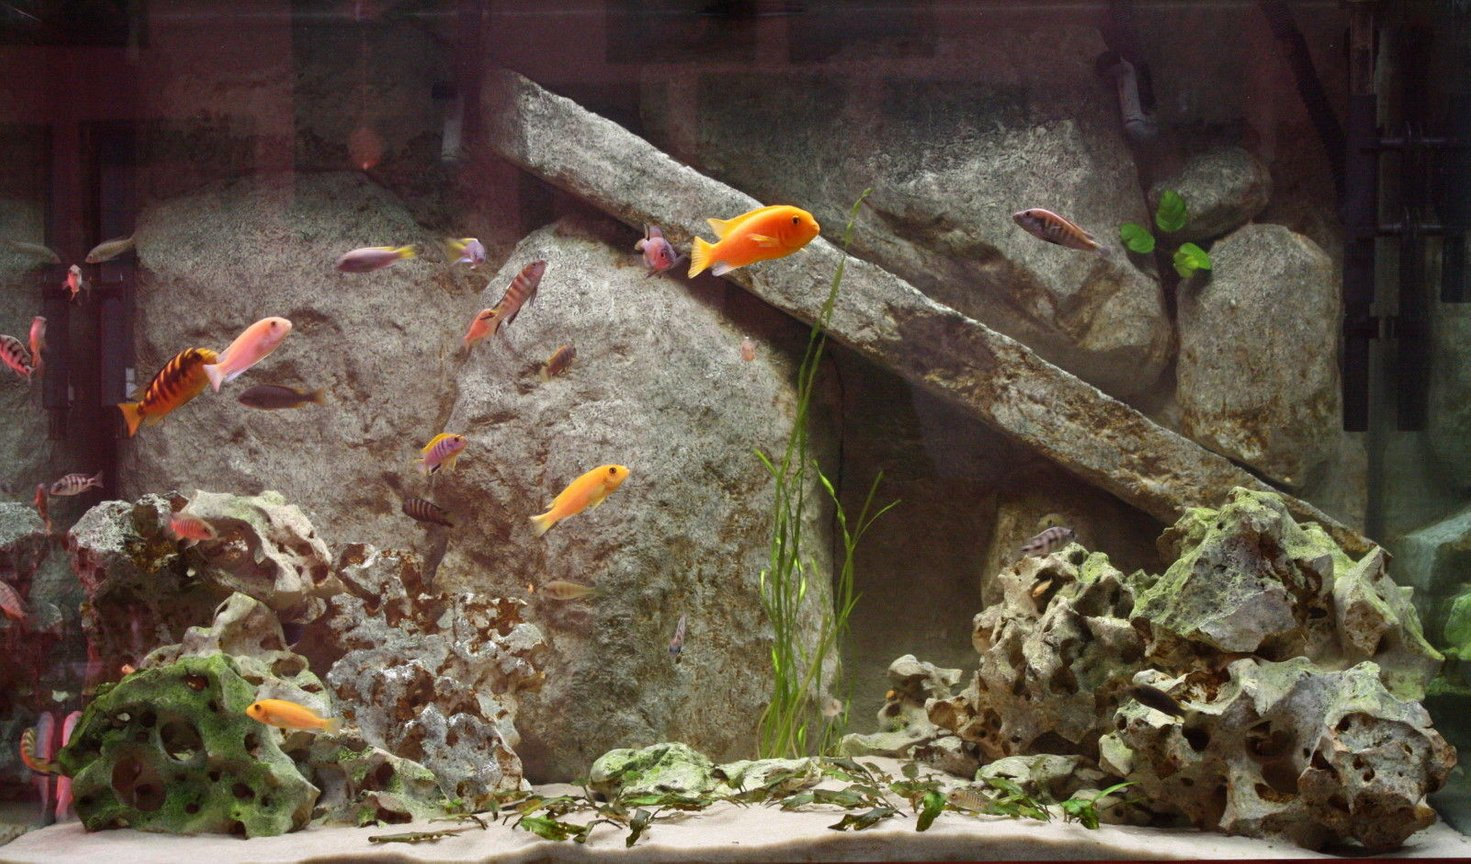 freshwater fish - pseudotropheus estherae - red zebra cichlid stocking in 150 gallons tank - 150 gallon mixed african cichlid tank.